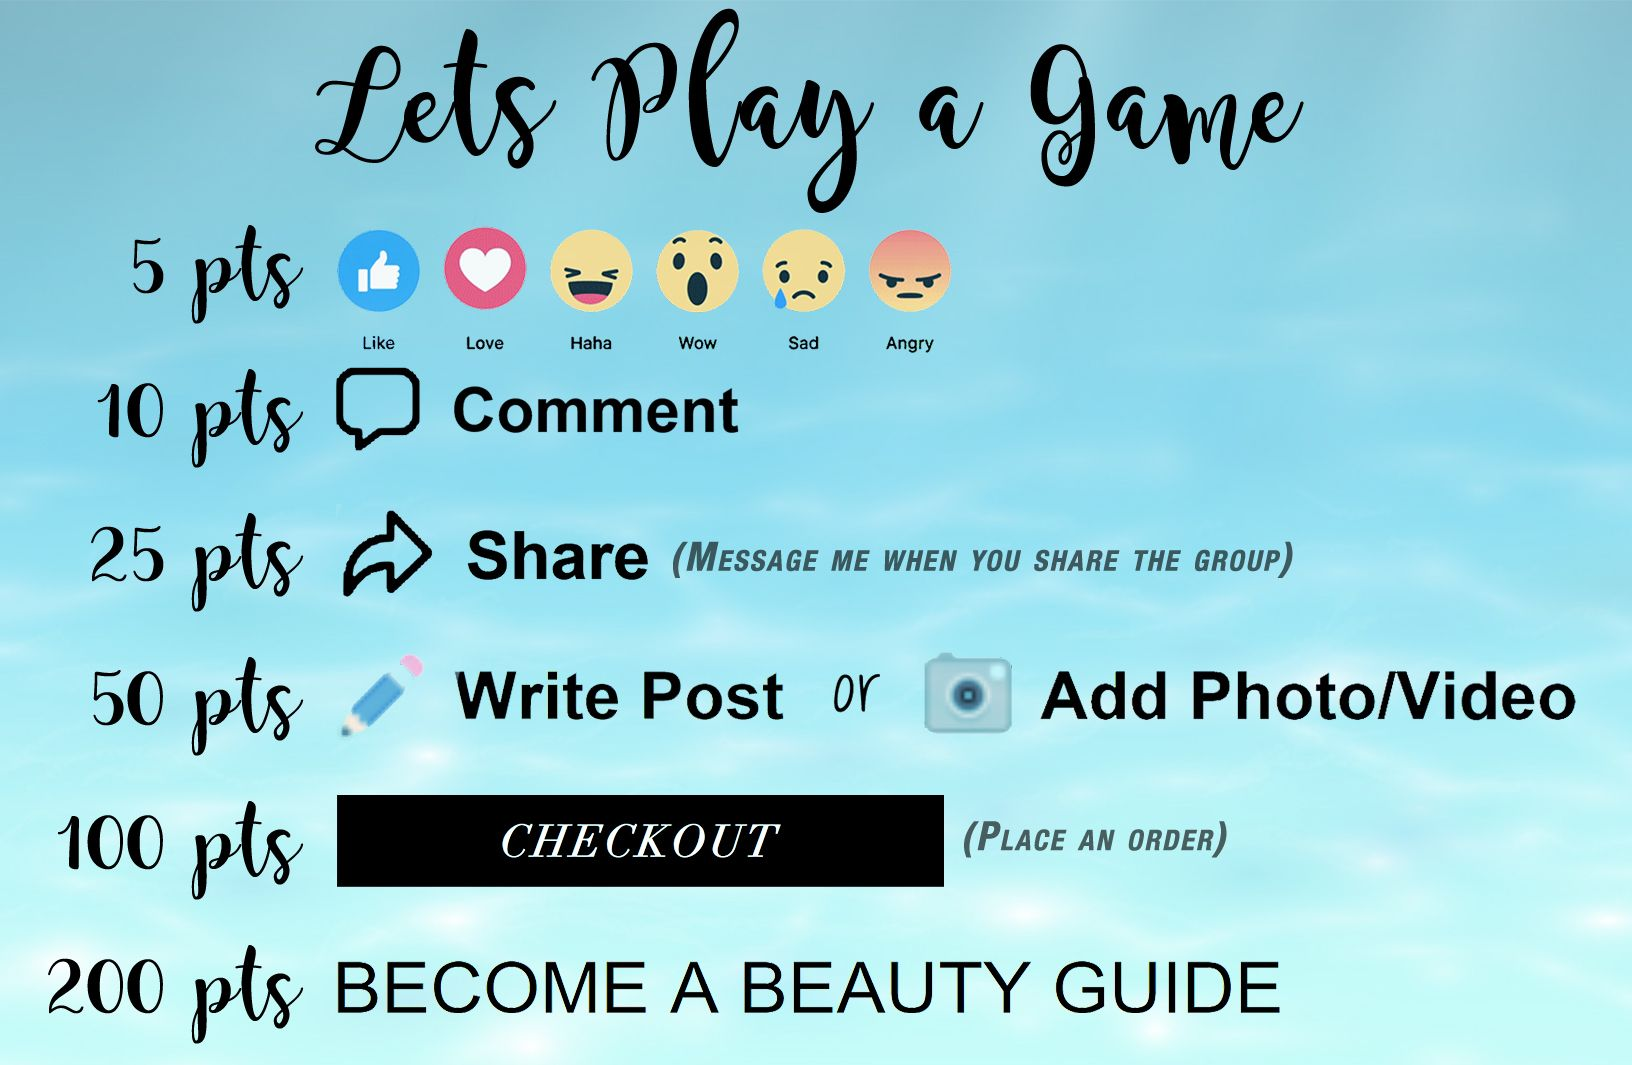 Use This Facebook Game In Your Limelight By Alcone Facebook Groups Or Parties To Increase Engagement Within Facebook Party Skincare Online Facebook Group Games